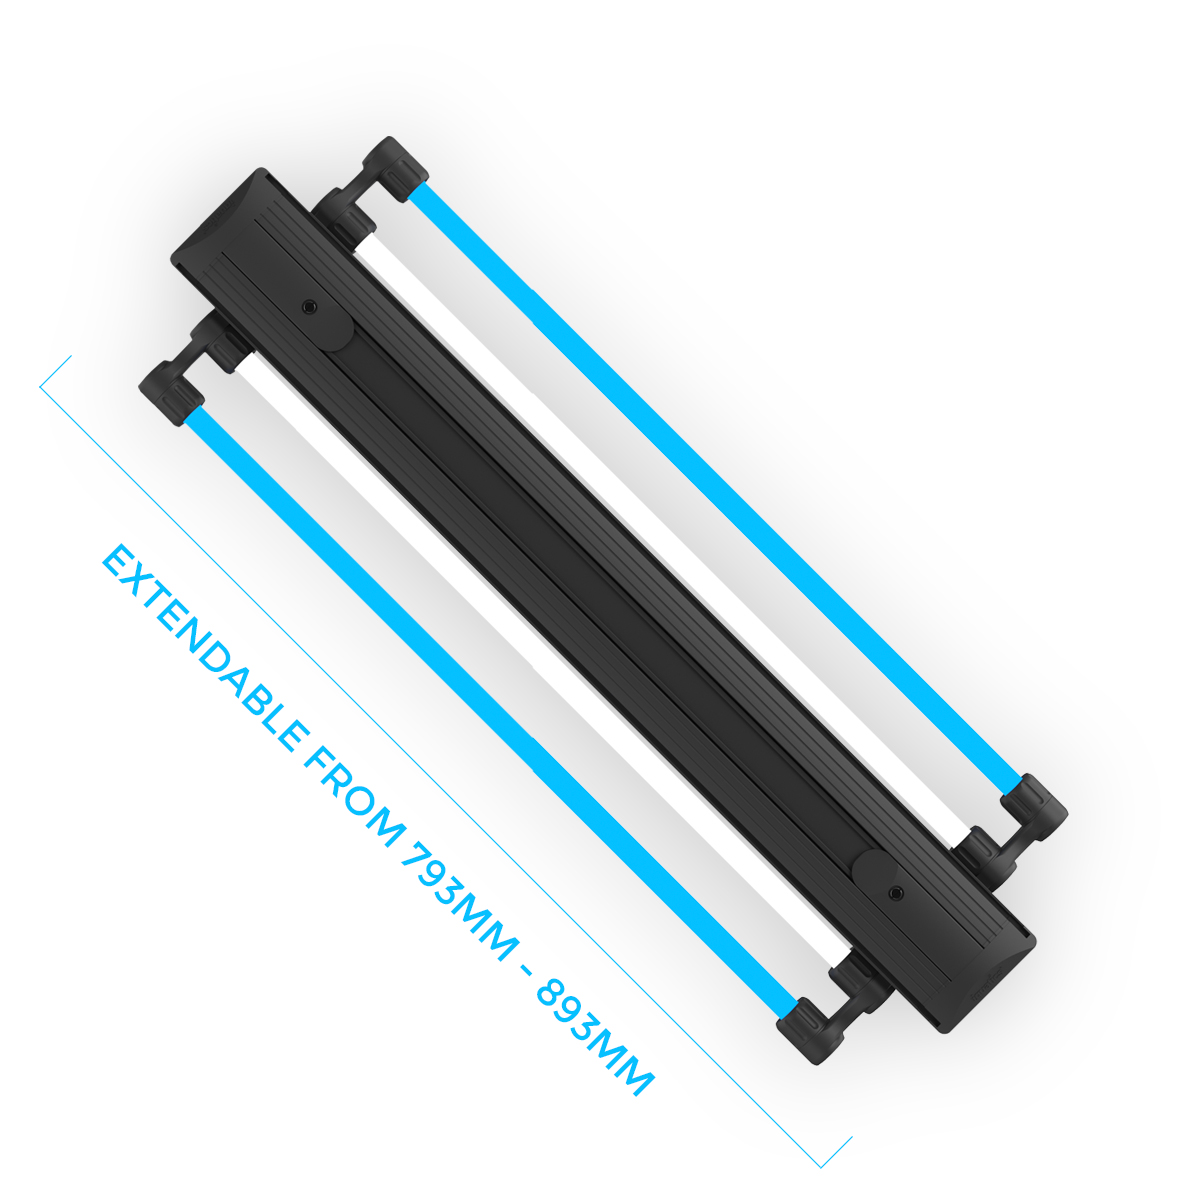 80cm T5 Light Unit, Juwel Compatible,Rio